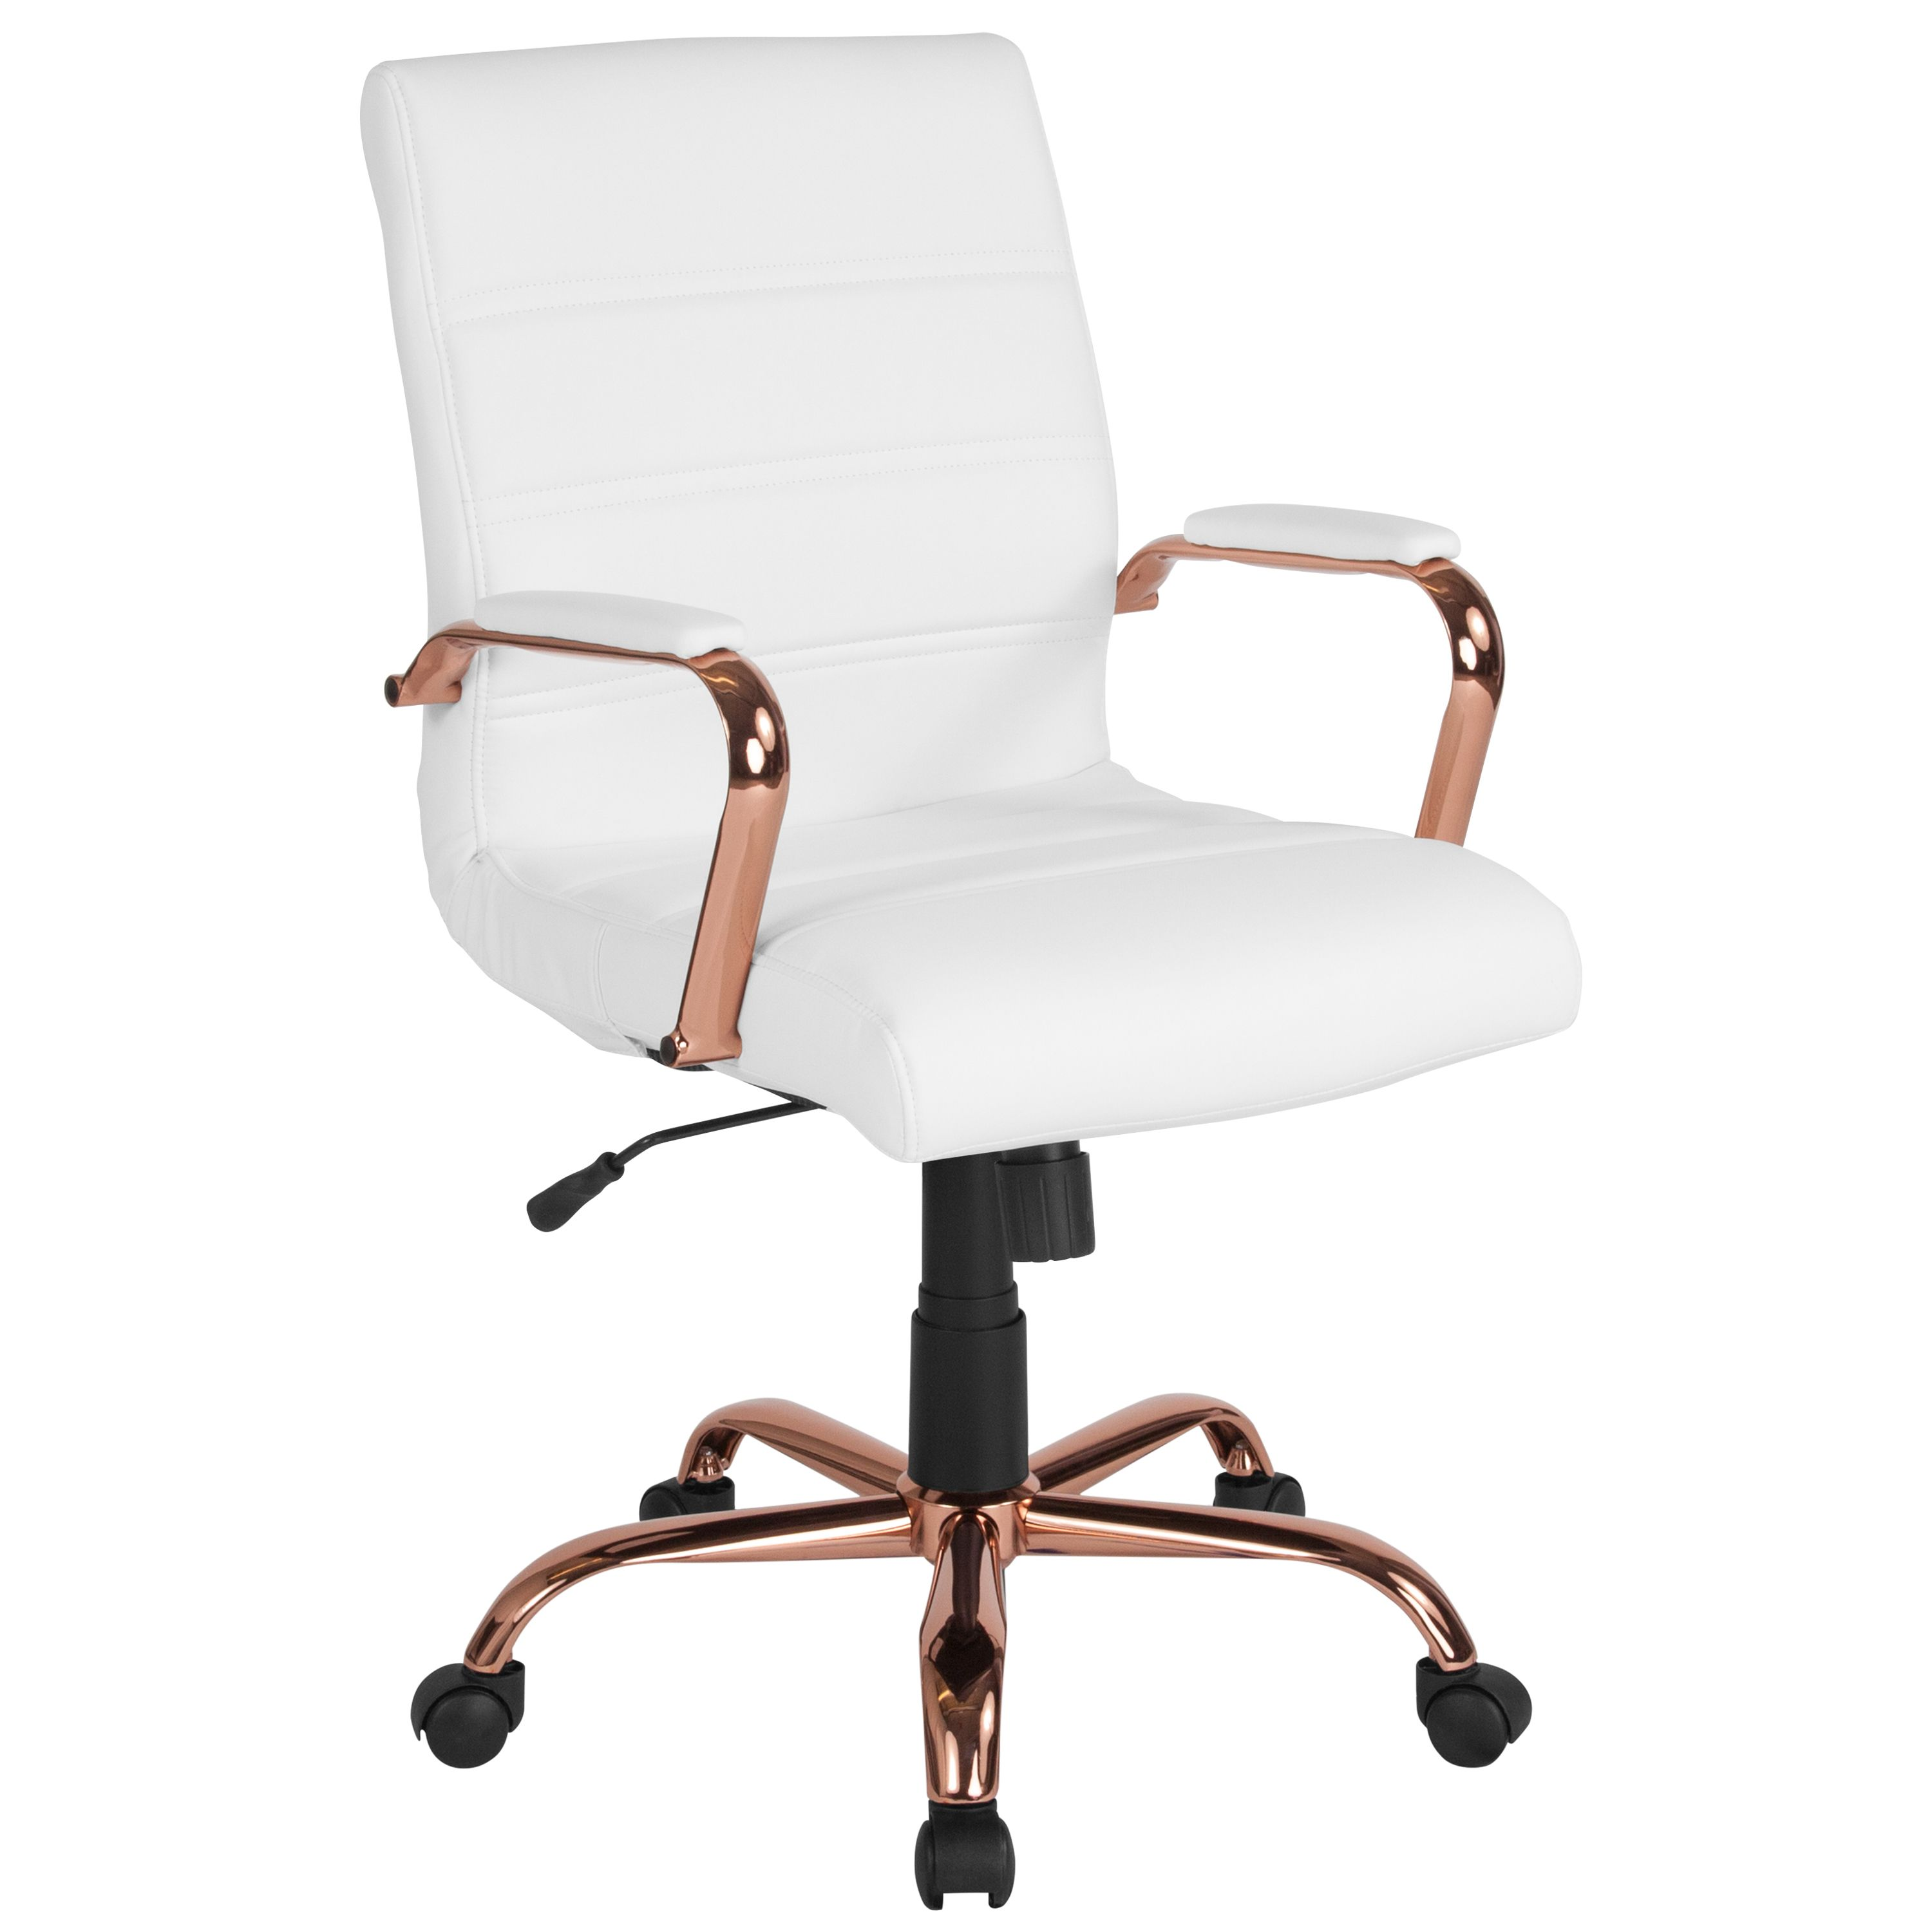 Home Cute Desk Chair White Office Chair Home Office Chairs